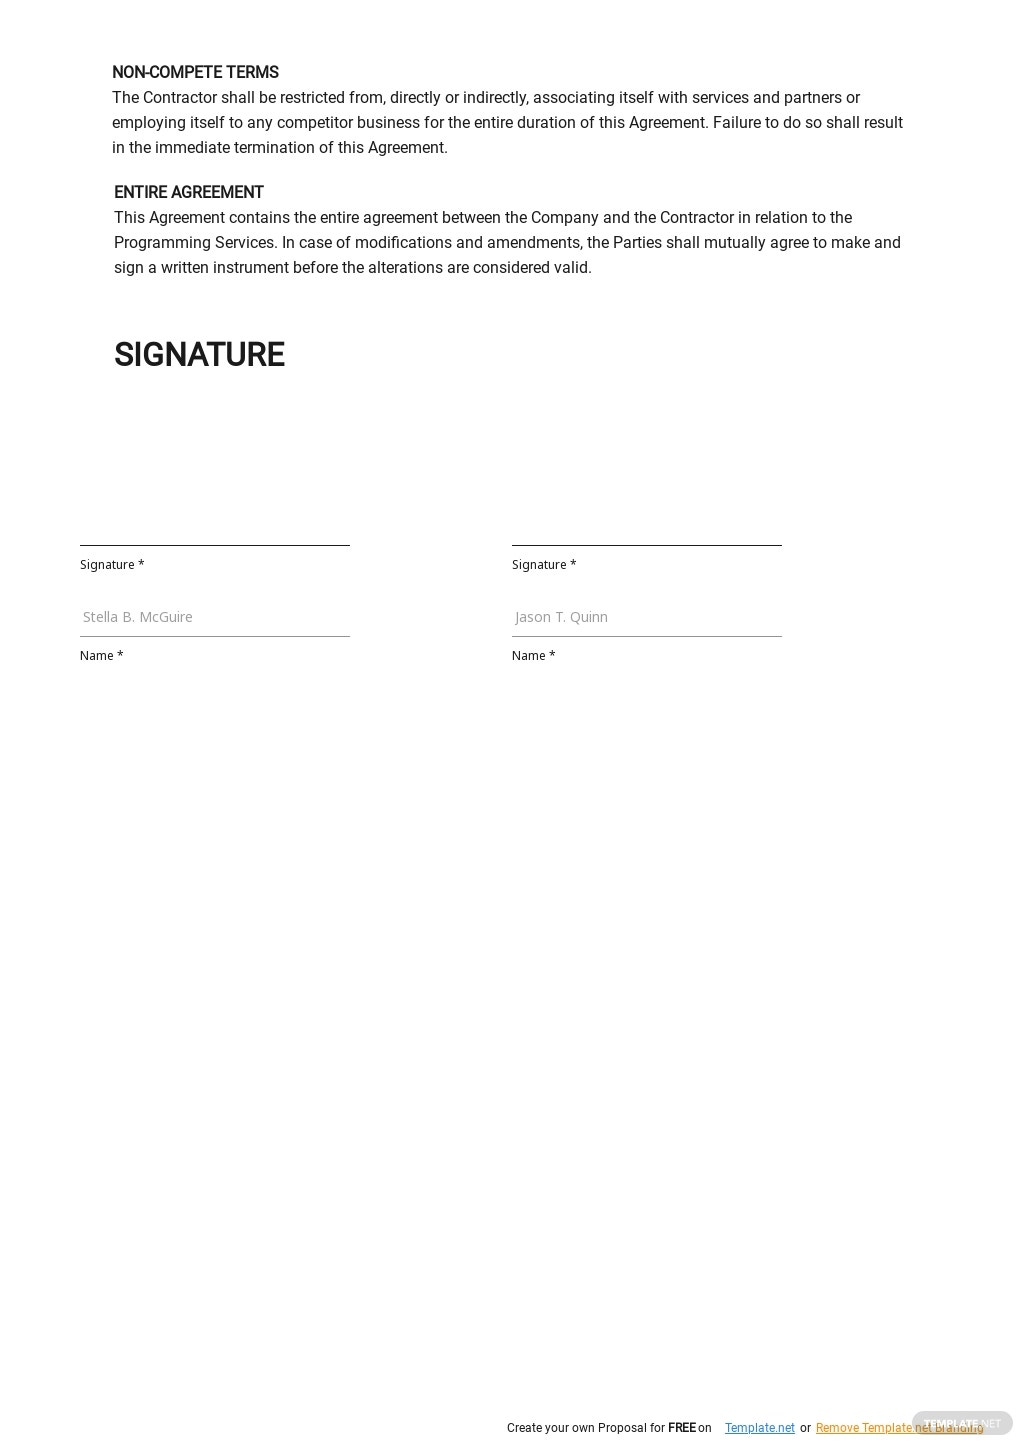 Independent Contractor Agreement For Programming Services Template 2.jpe